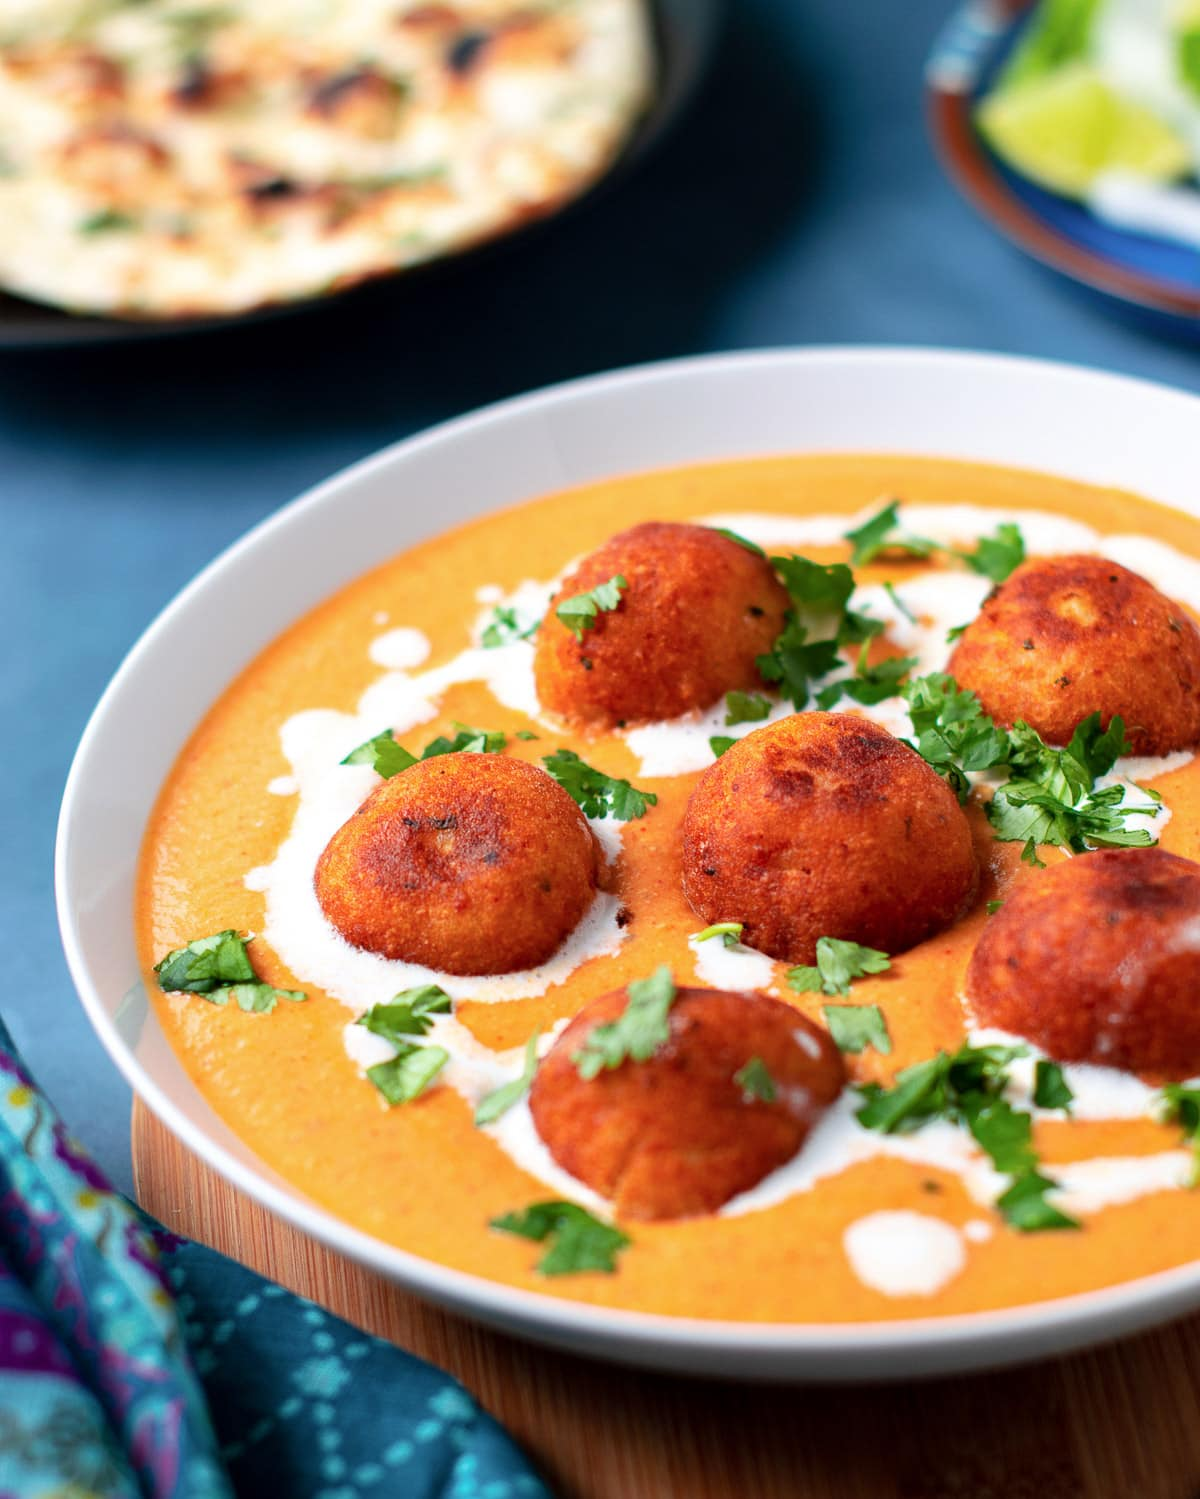 Paneer koftas dunked in Indian gravy and served in a bowl with naan on the side